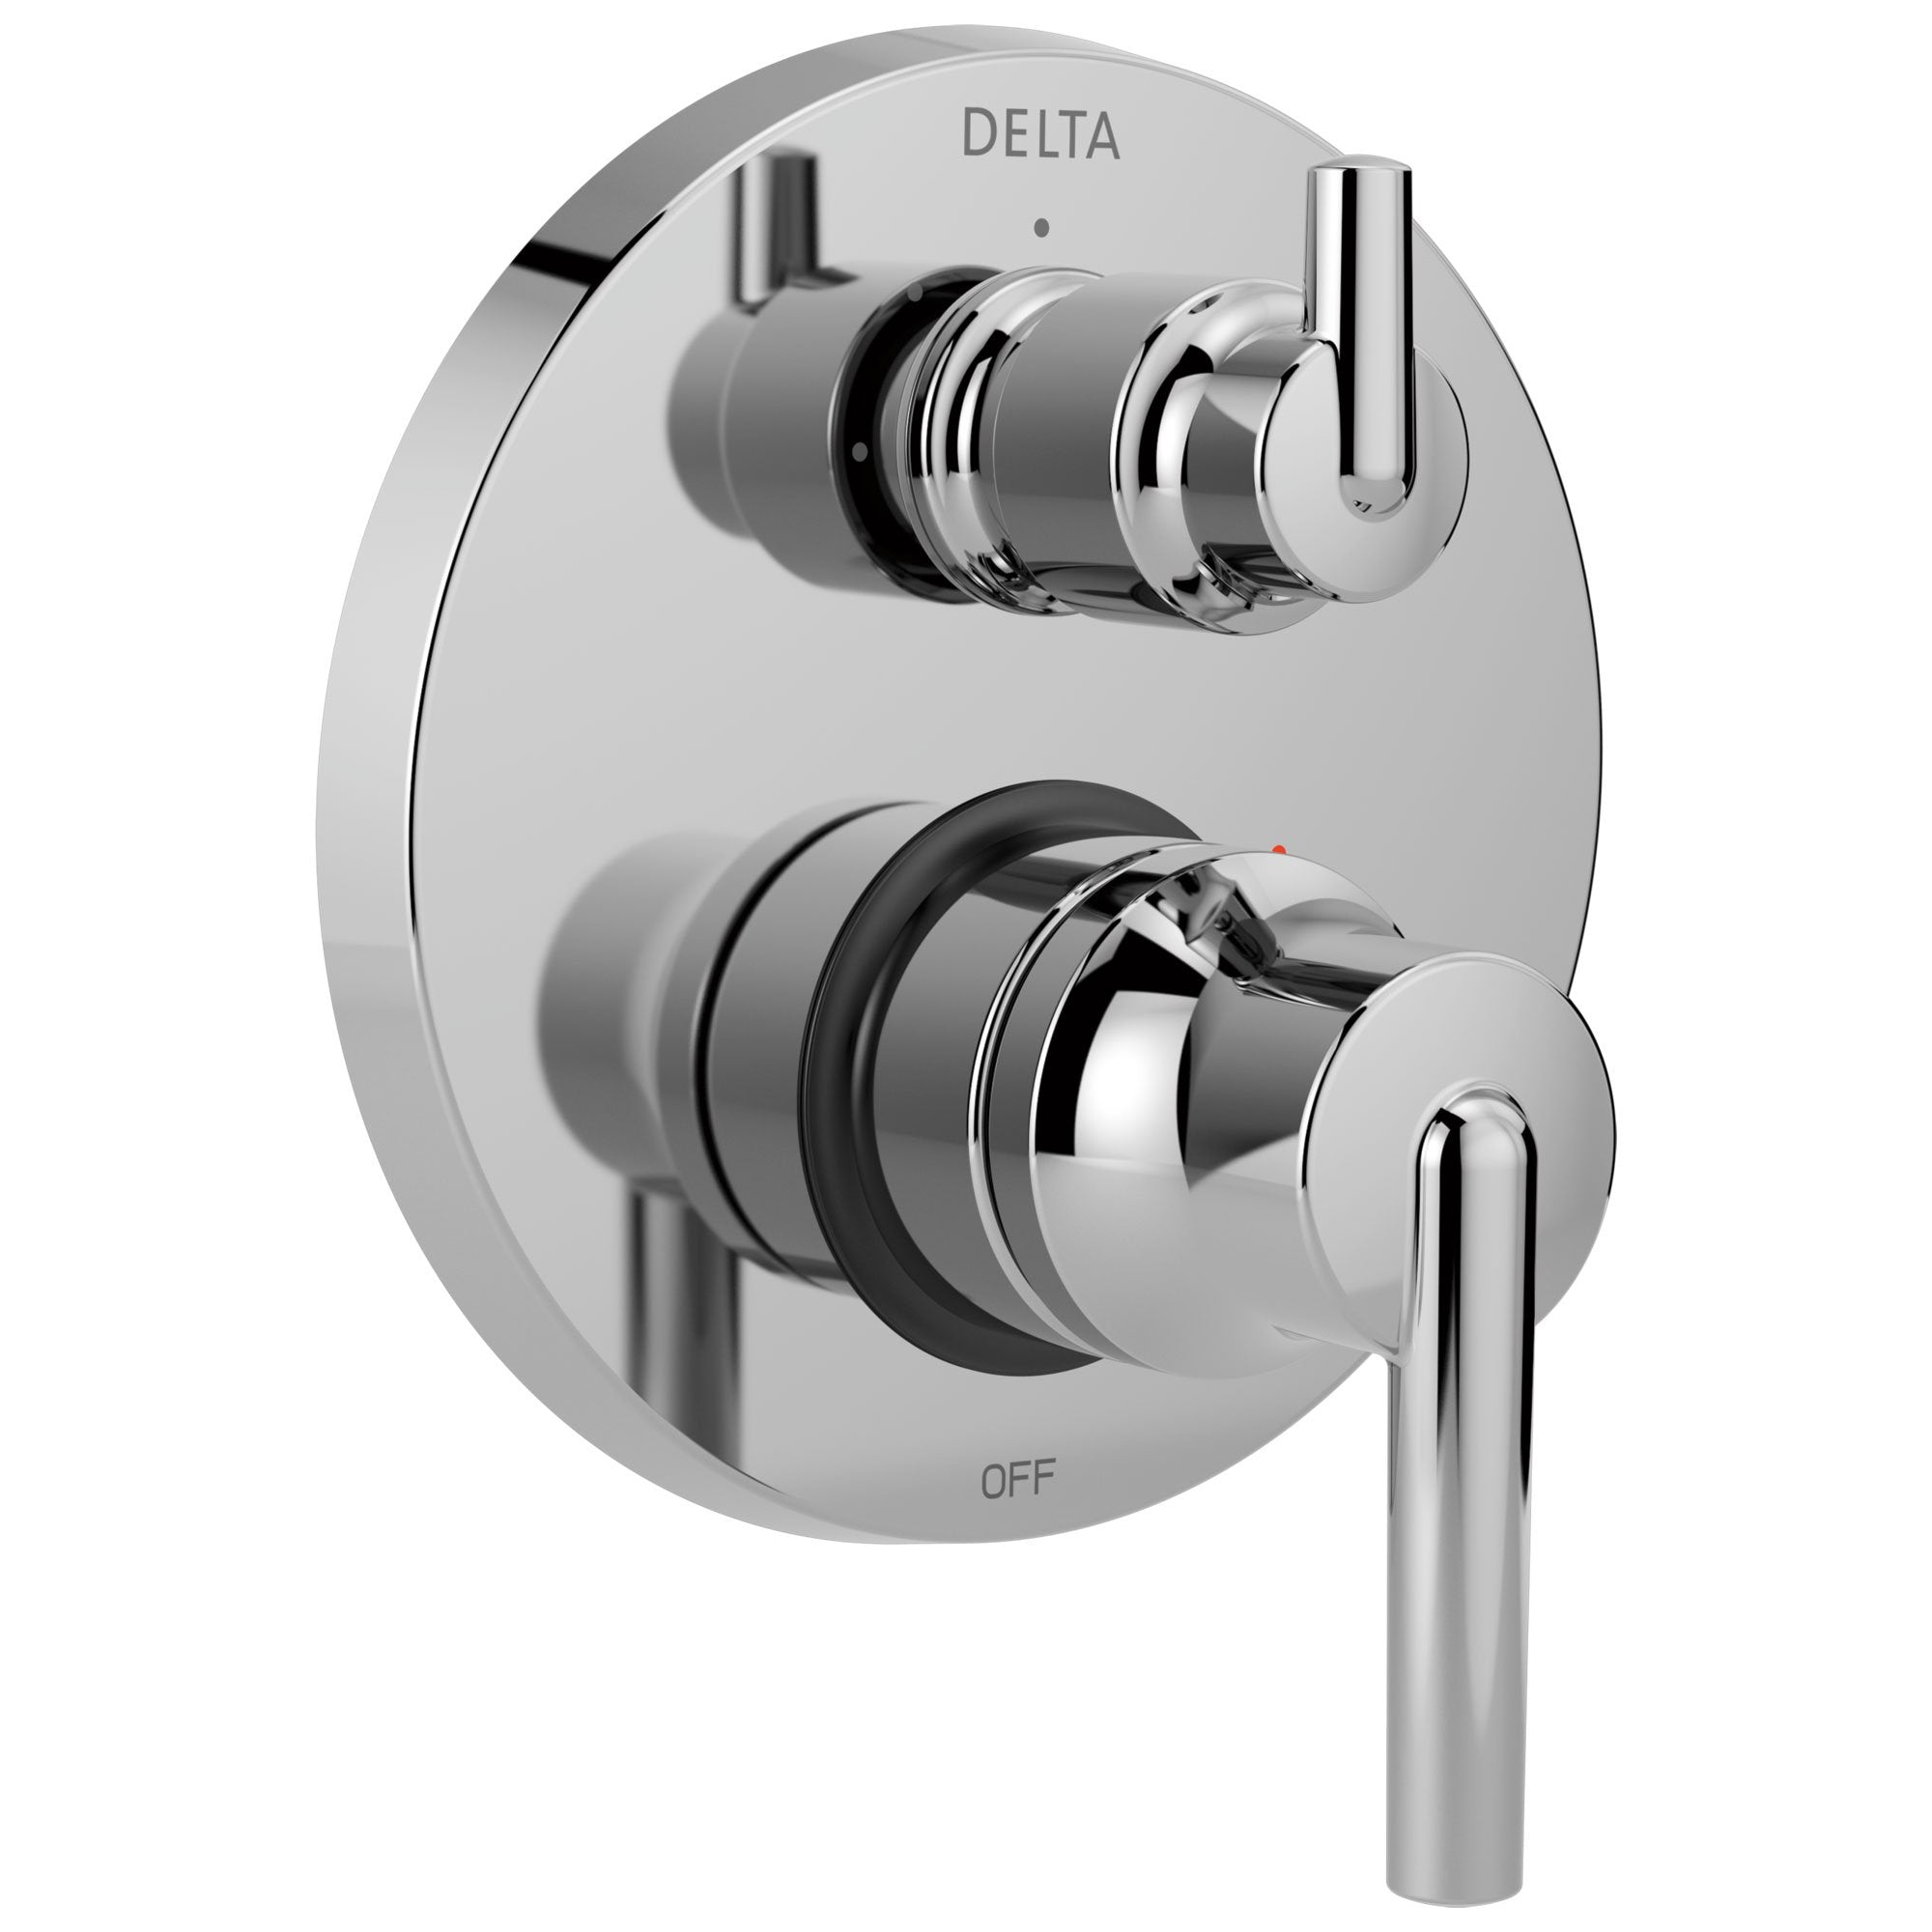 Delta Trinsic Chrome Monitor 14 Shower Faucet Valve Trim Control Handle With 3 Setting Integrated Diverter Includes Trim Kit And Valve Without Stops